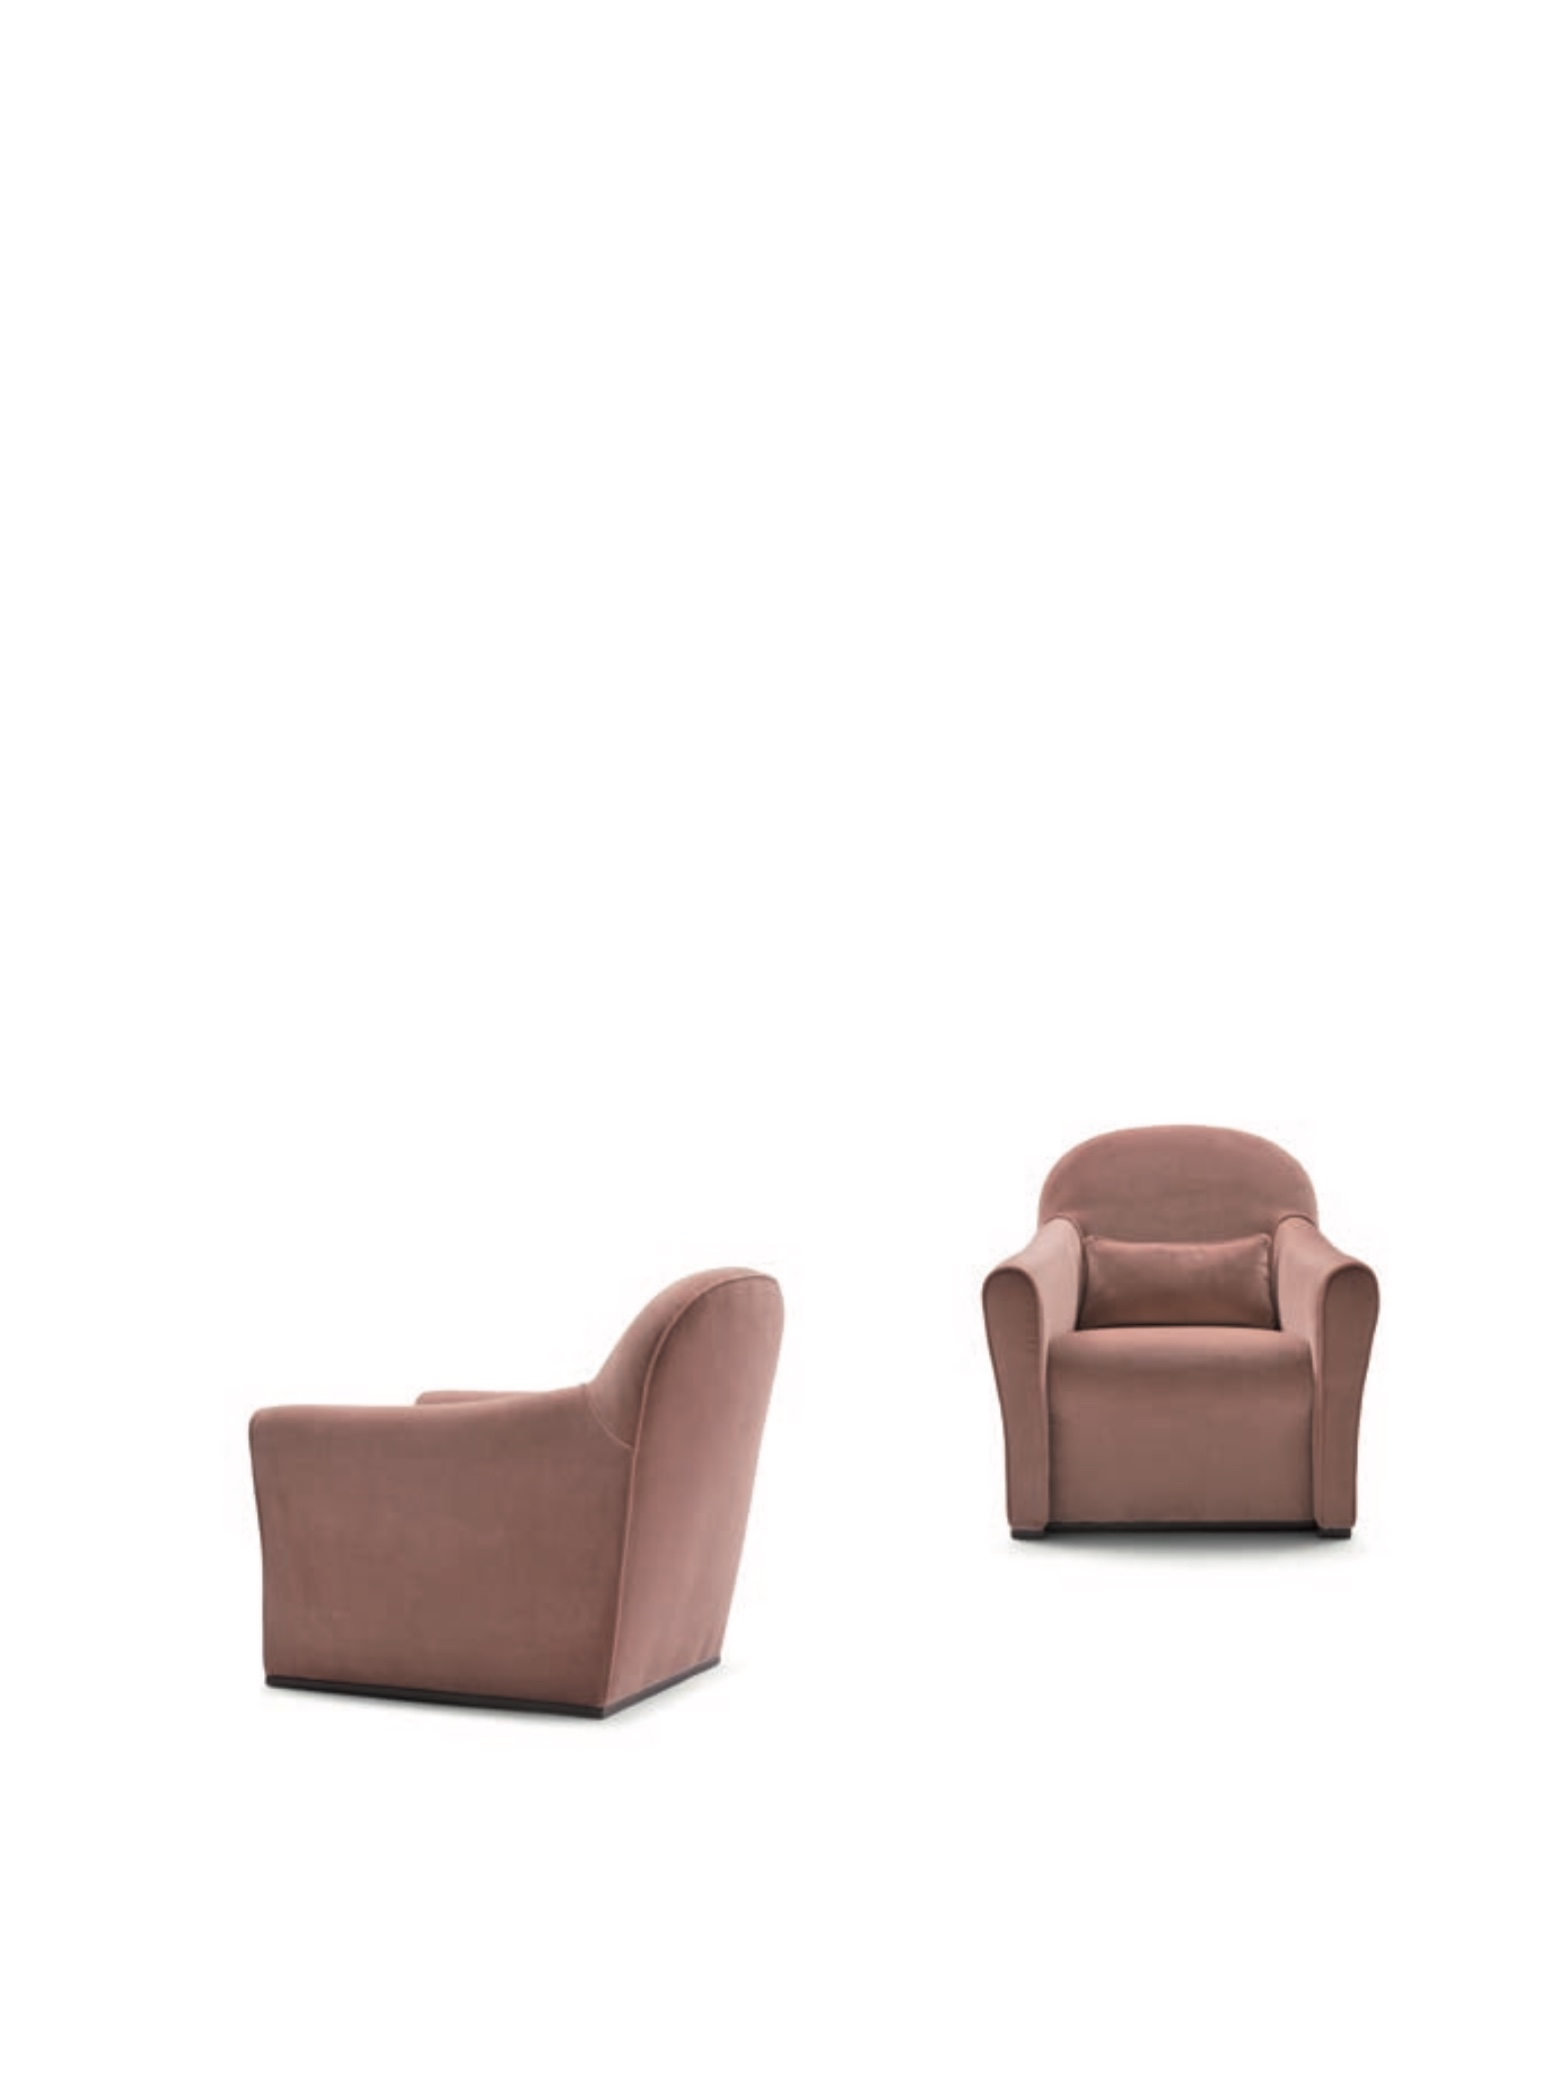 modern contemporary armchairs lounge chairs00012.jpeg